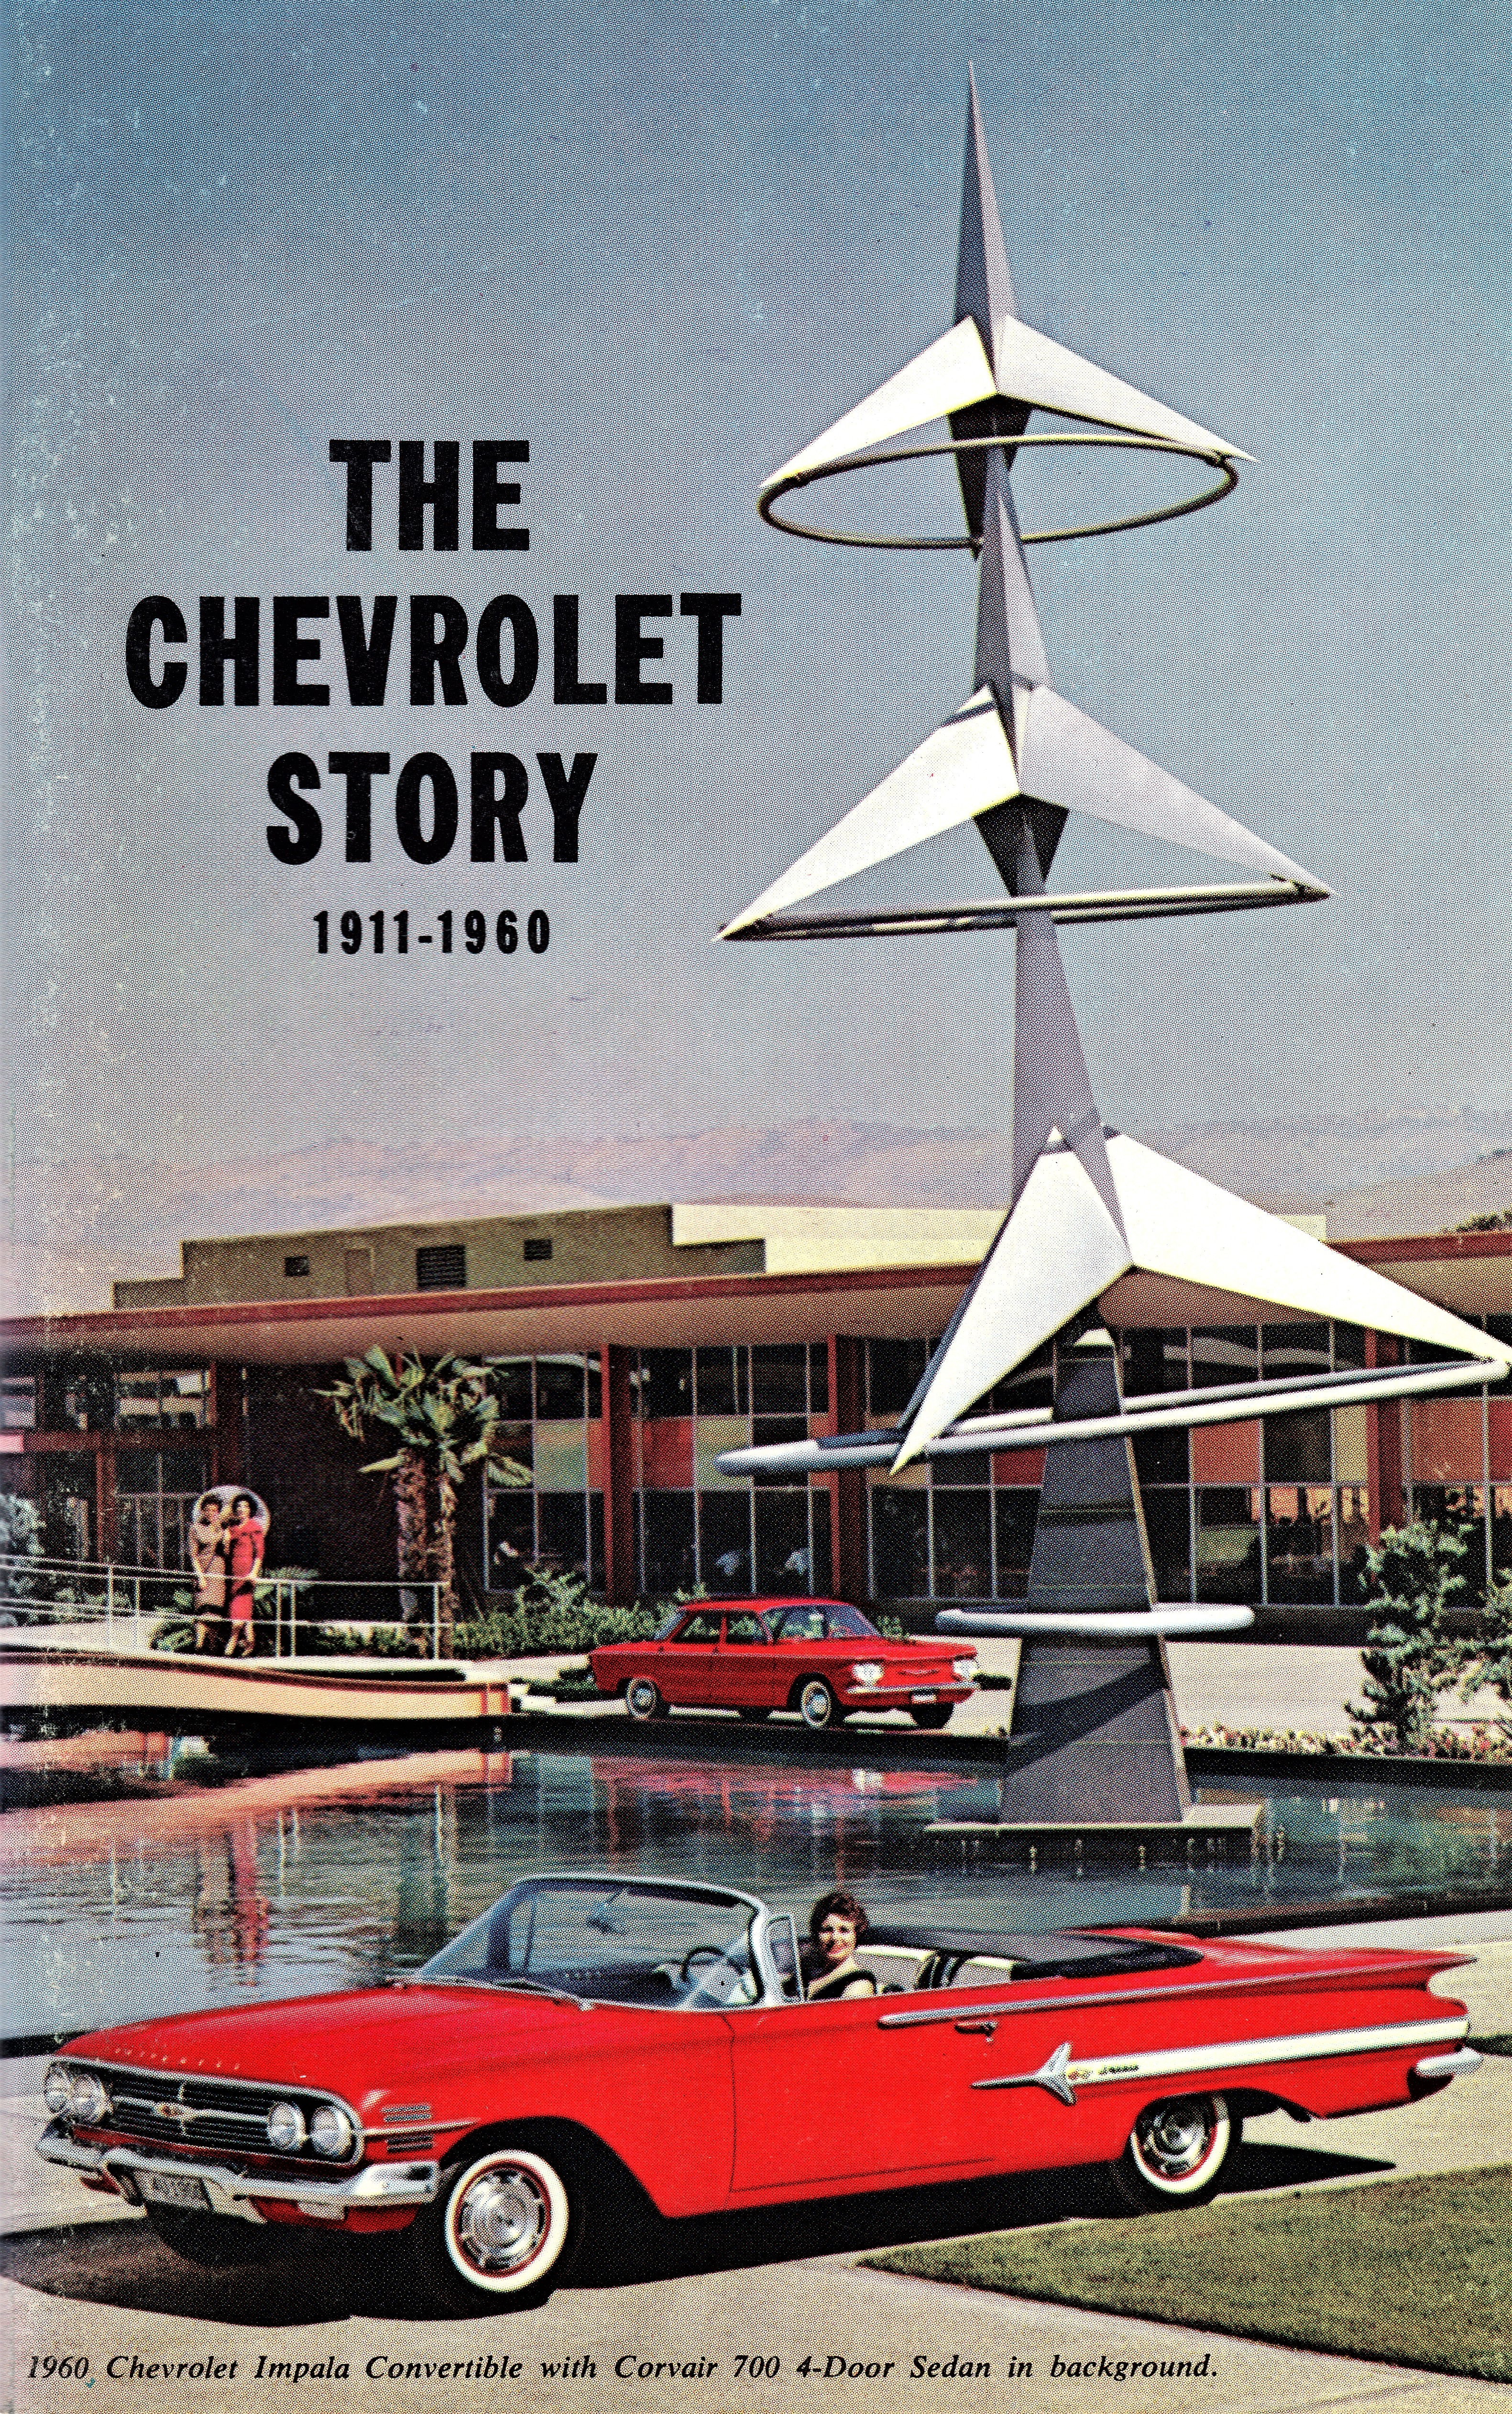 'The Chevrolet Story 1911-1960